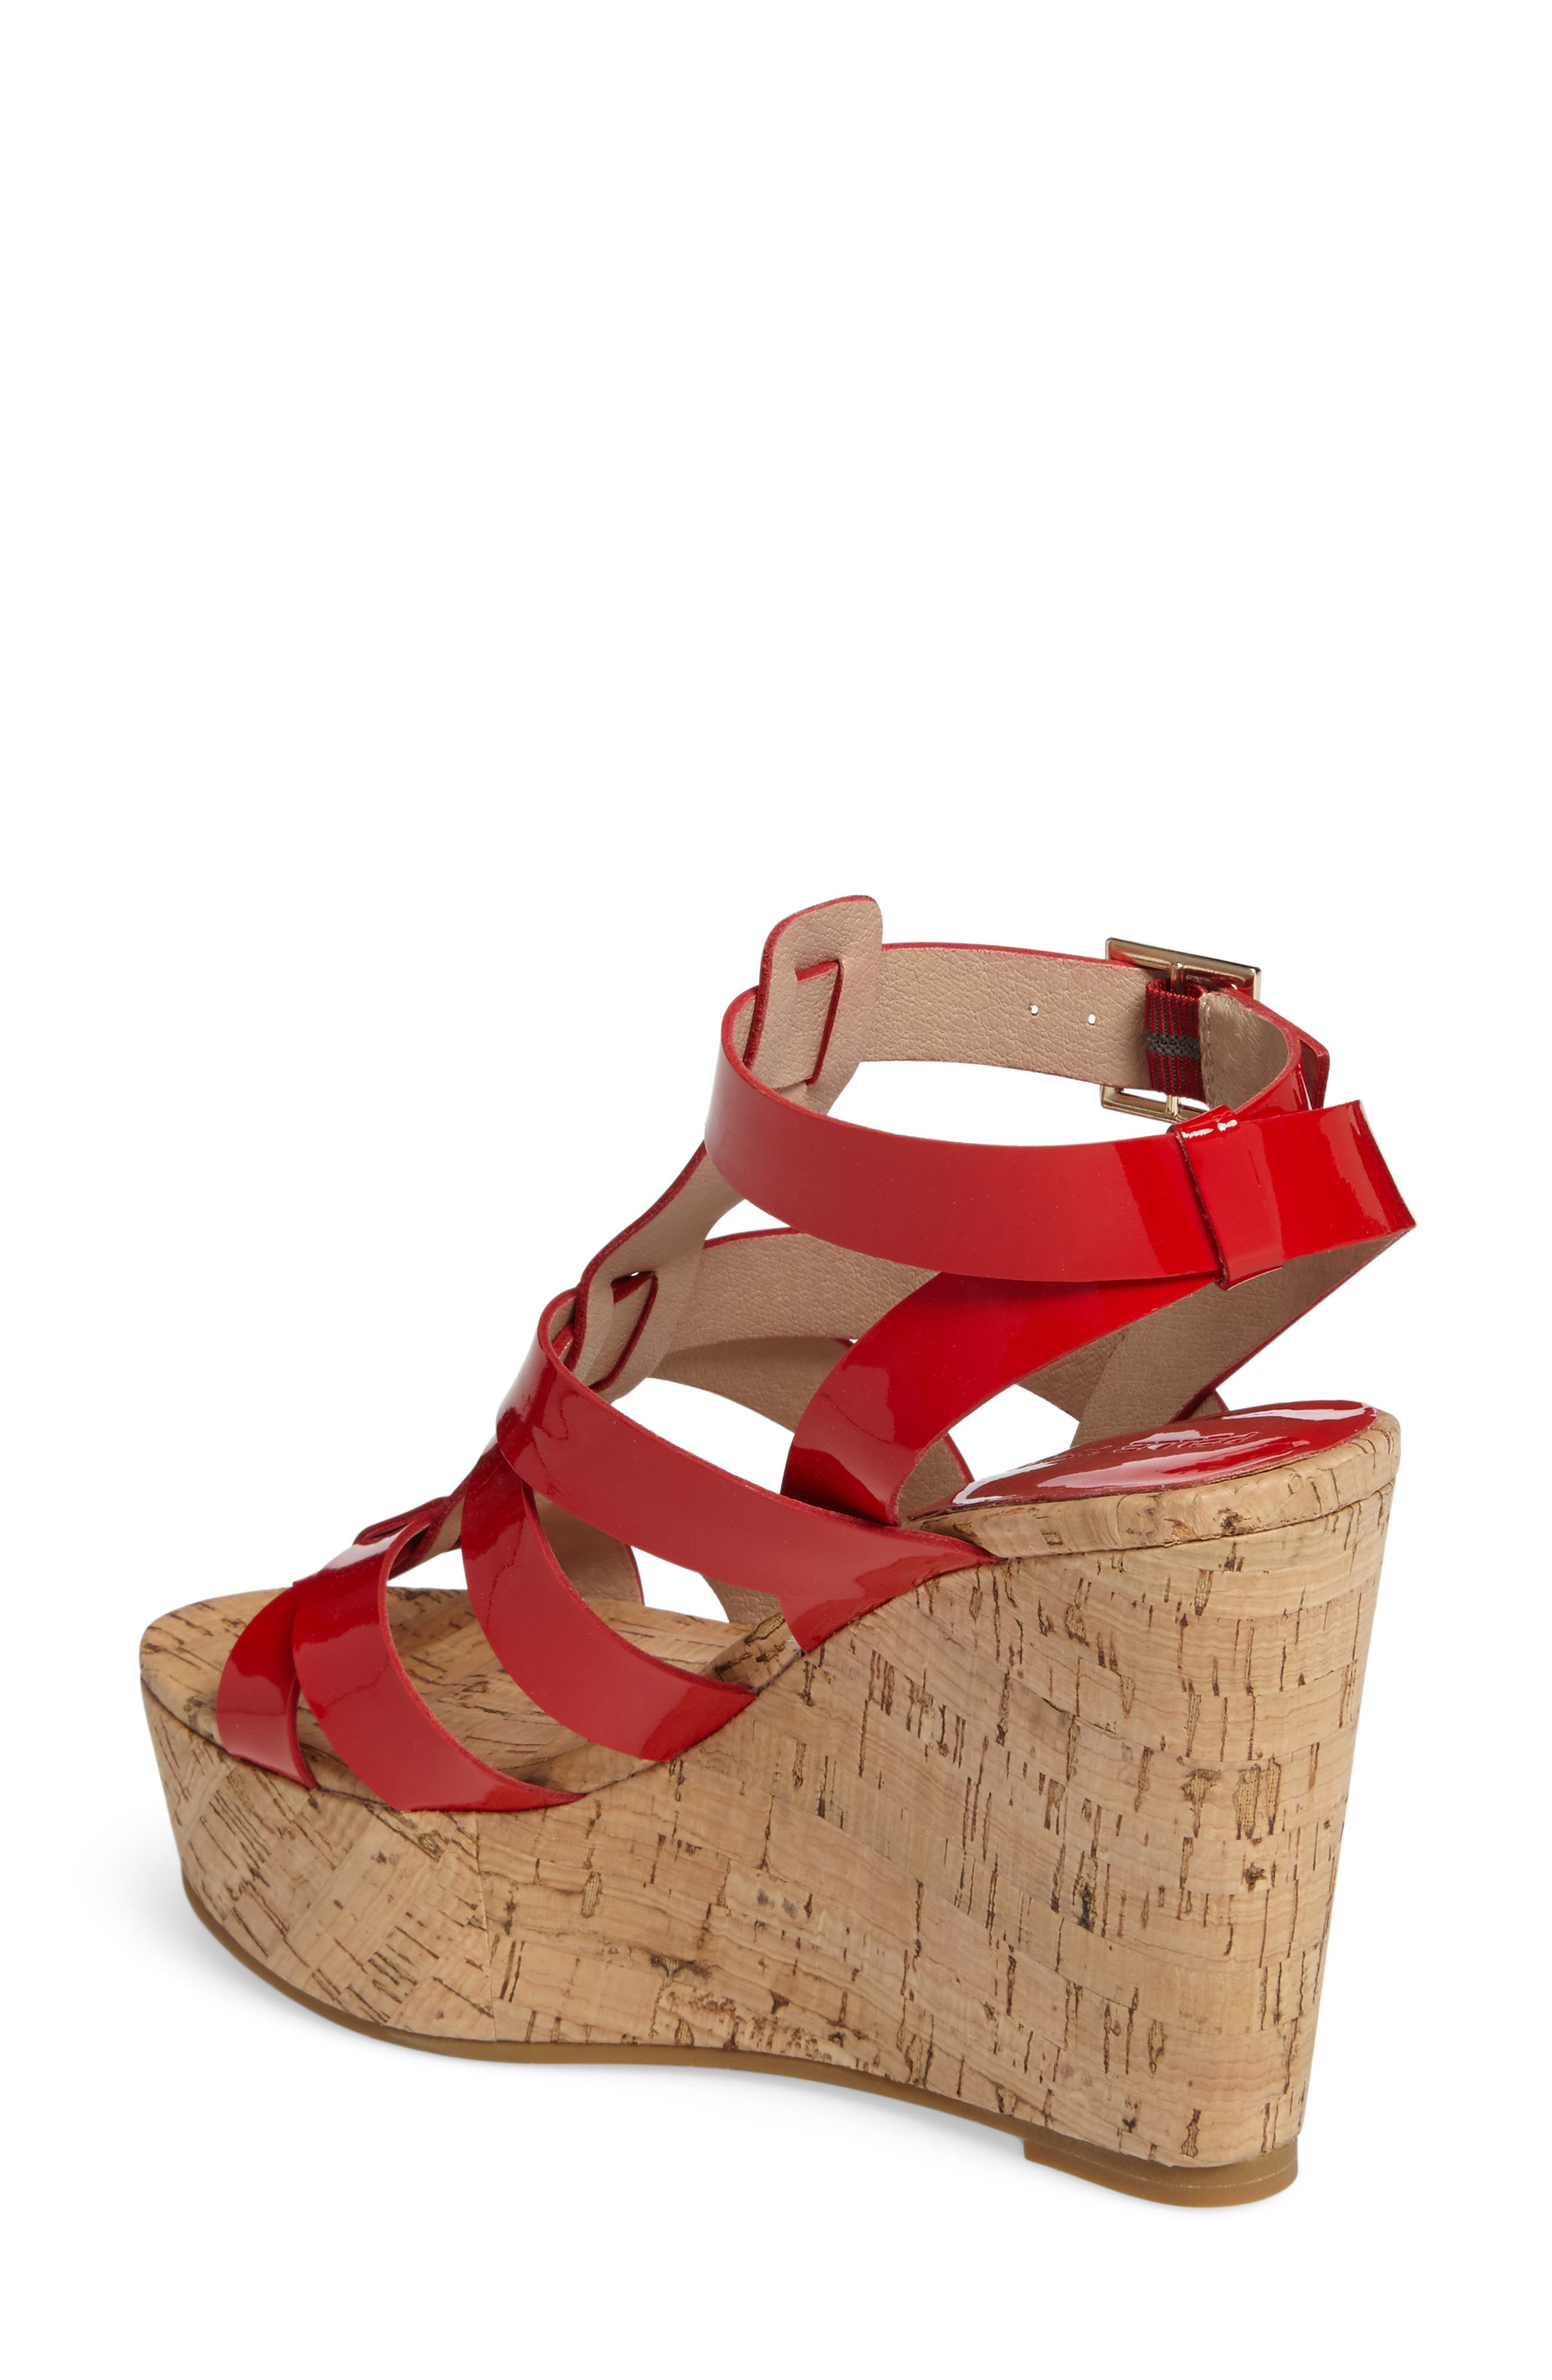 Rayjay Wedge Sandal,                             Alternate thumbnail 7, color,